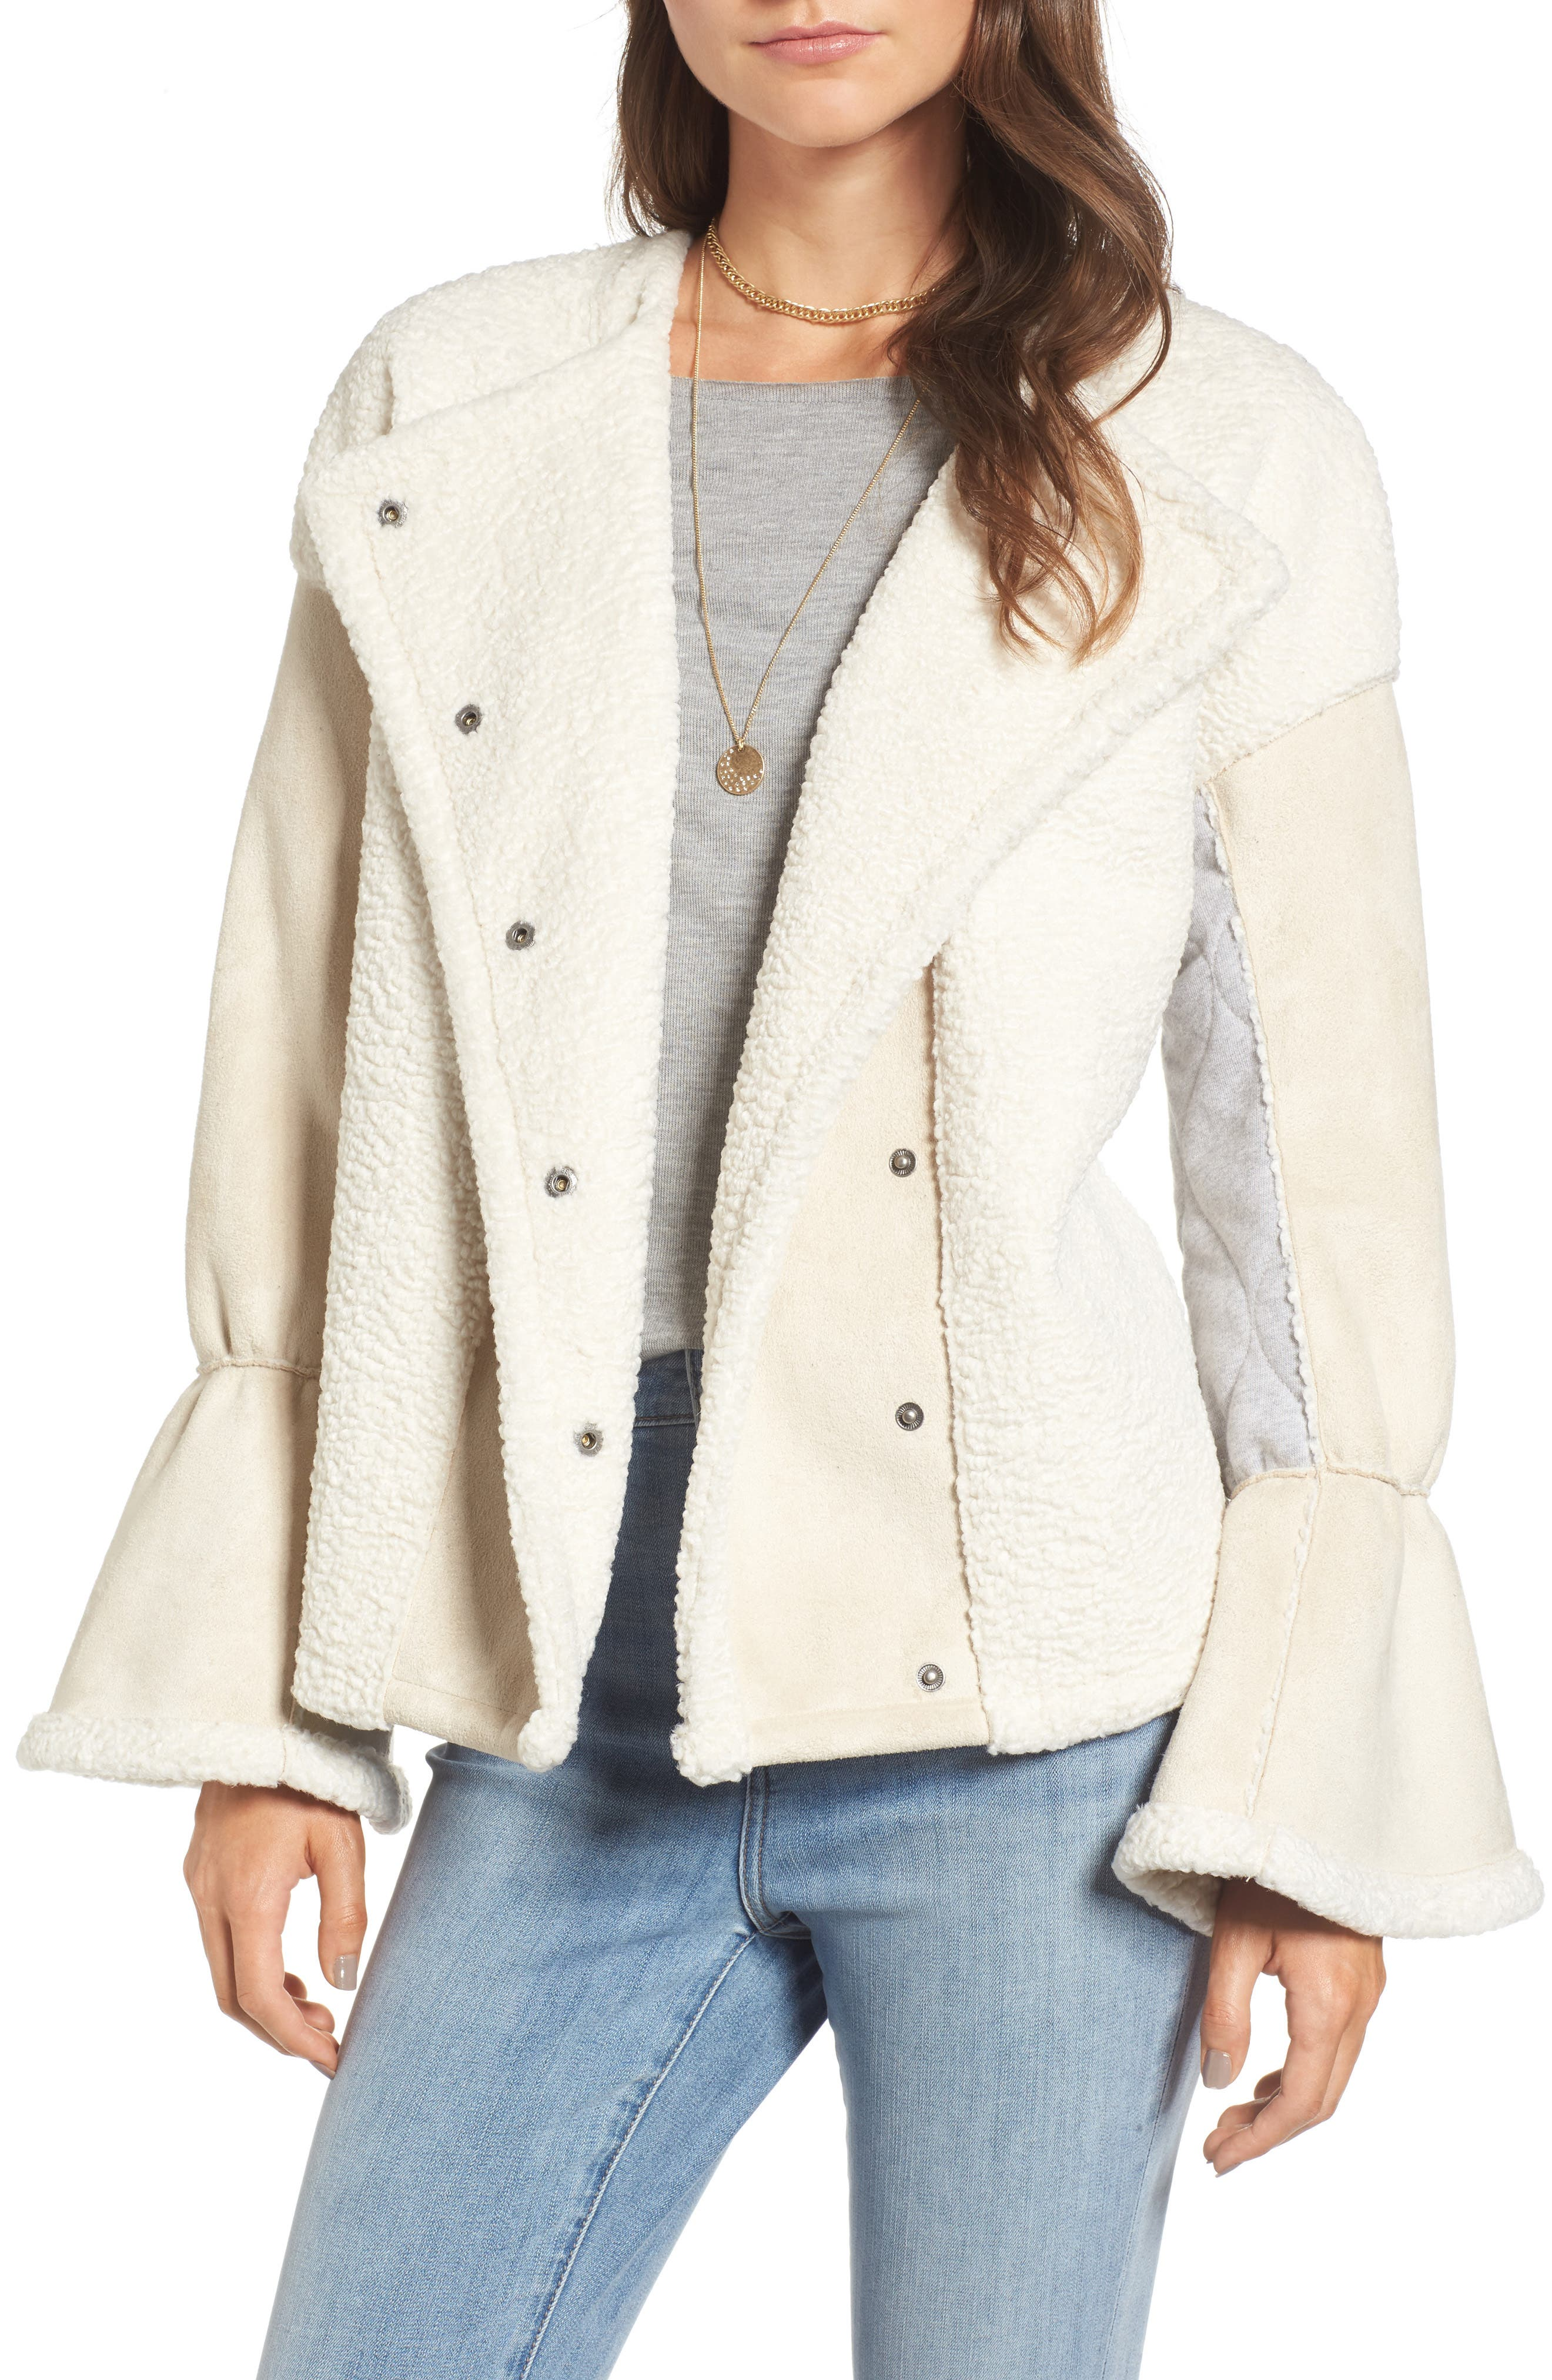 x Something Navy Bell Sleeve Faux Shearling Jacket,                         Main,                         color, Ivory Combo